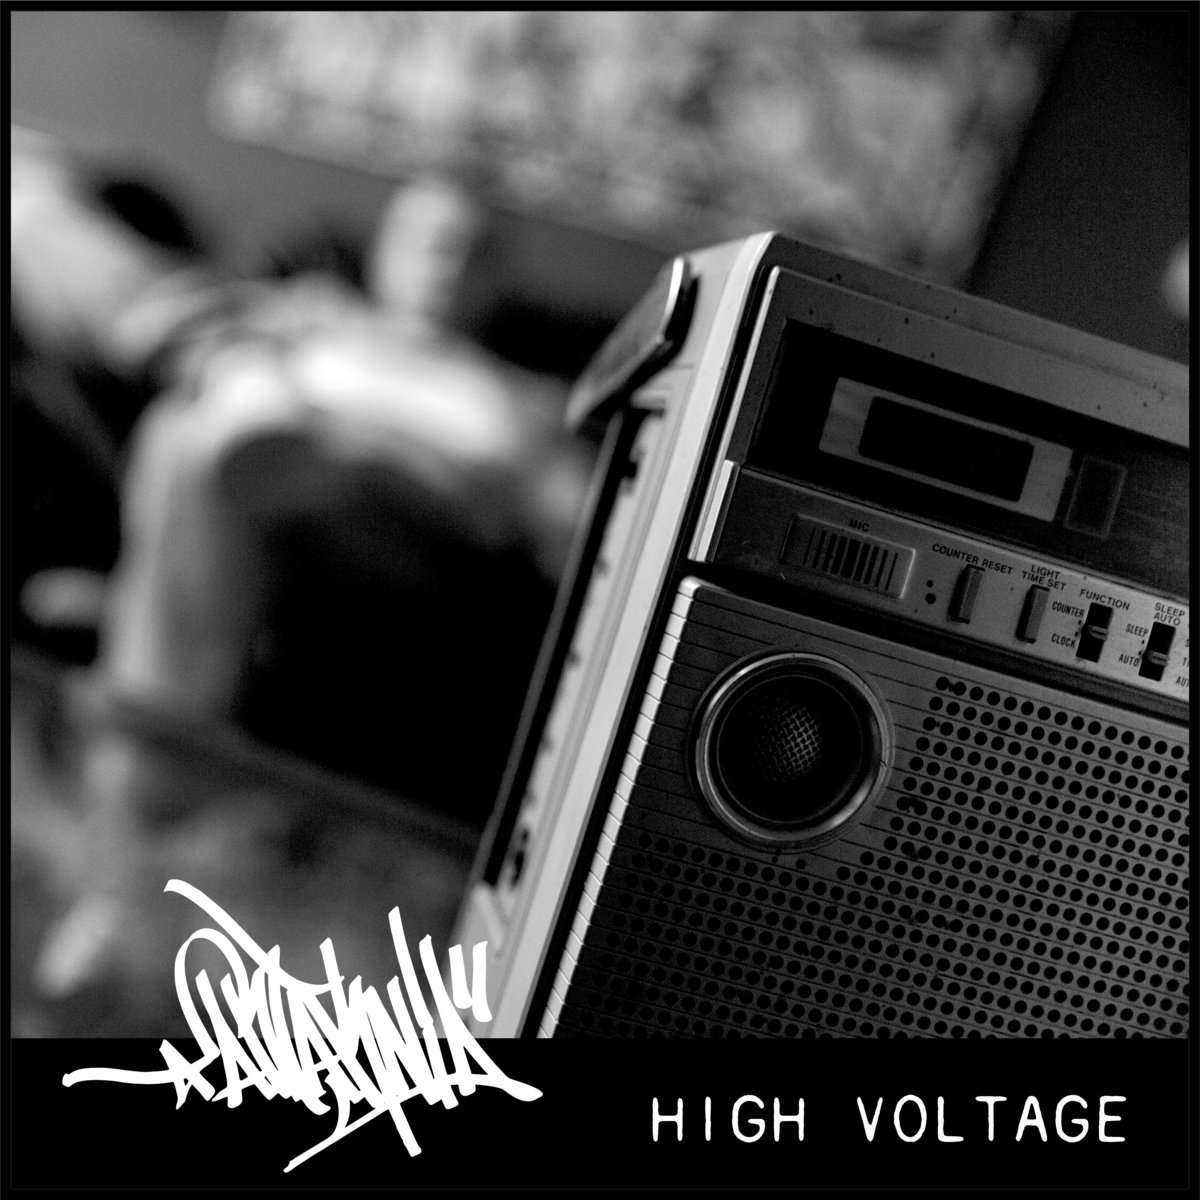 Art Aknid - High Voltage (2016)